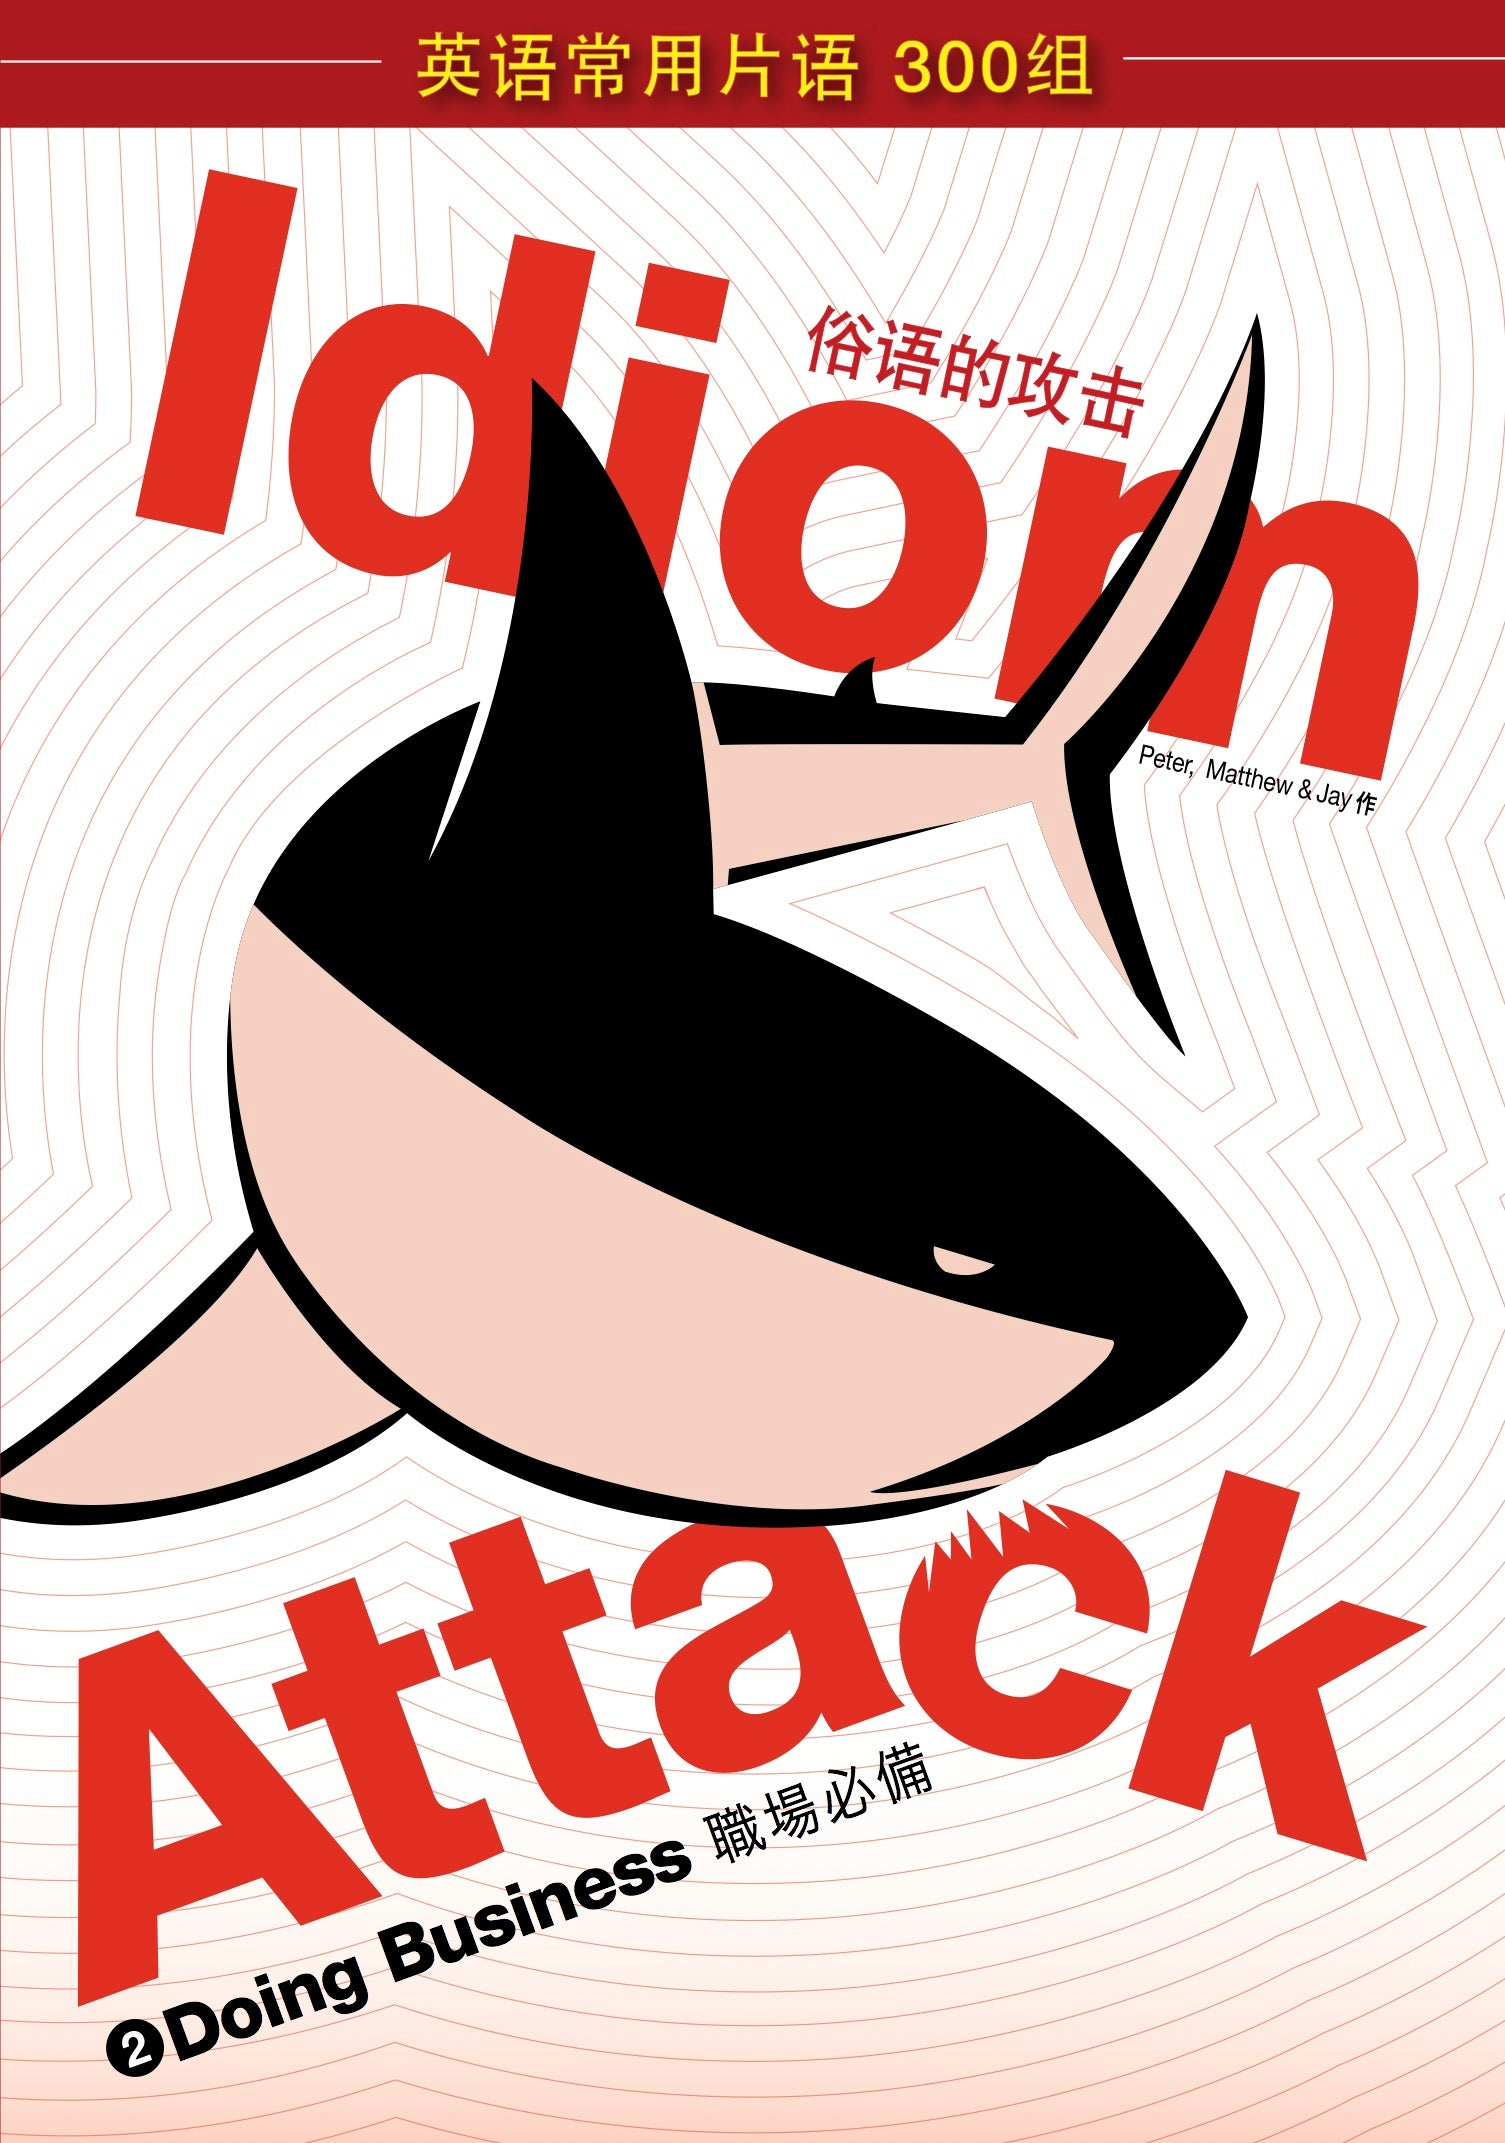 Idiom Attack Vol. 2 - Doing Business (Sim. Chinese Edition): 战胜词组攻击 2 - 职场必备 : English Idioms for ESL Learners: With 300+ Idioms in 25 Themed Chapters w/ free MP3 at IdiomAttack.com